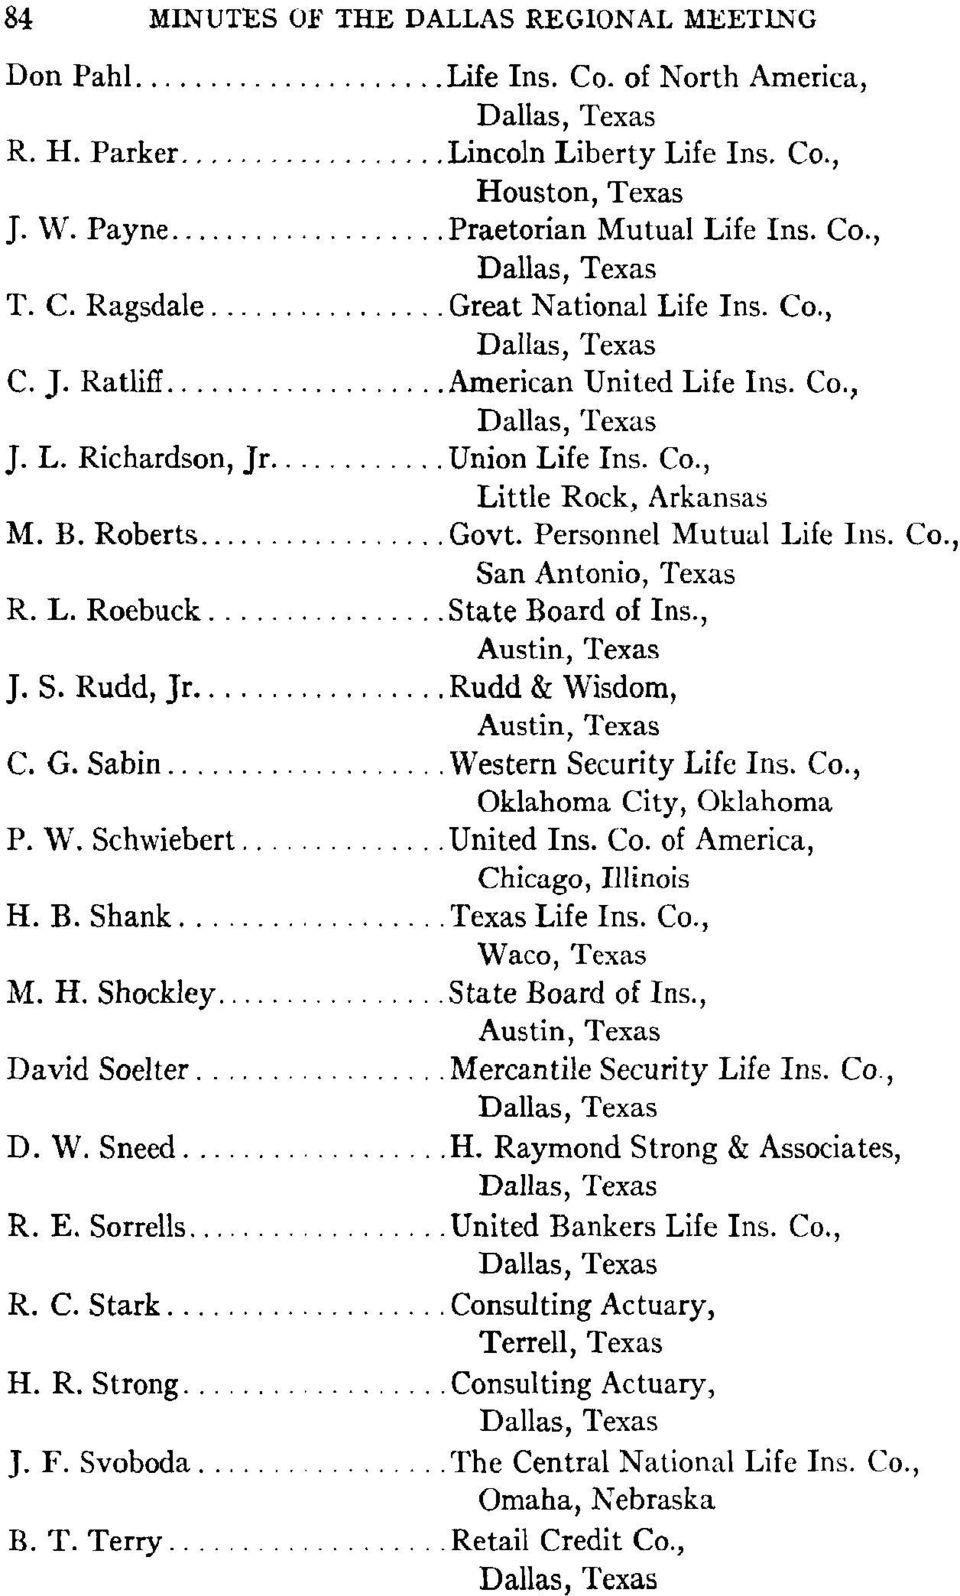 Personnel Mutual Life Ills. Co., San Antonio, Texas R. L. Roebuck... State Board of Ins., J. S. Rudd, Jr... Rudd & Wisdom, C. G. Sabin... Western Security Life Ins. Co., P. W. Schwiebert... United Ins.